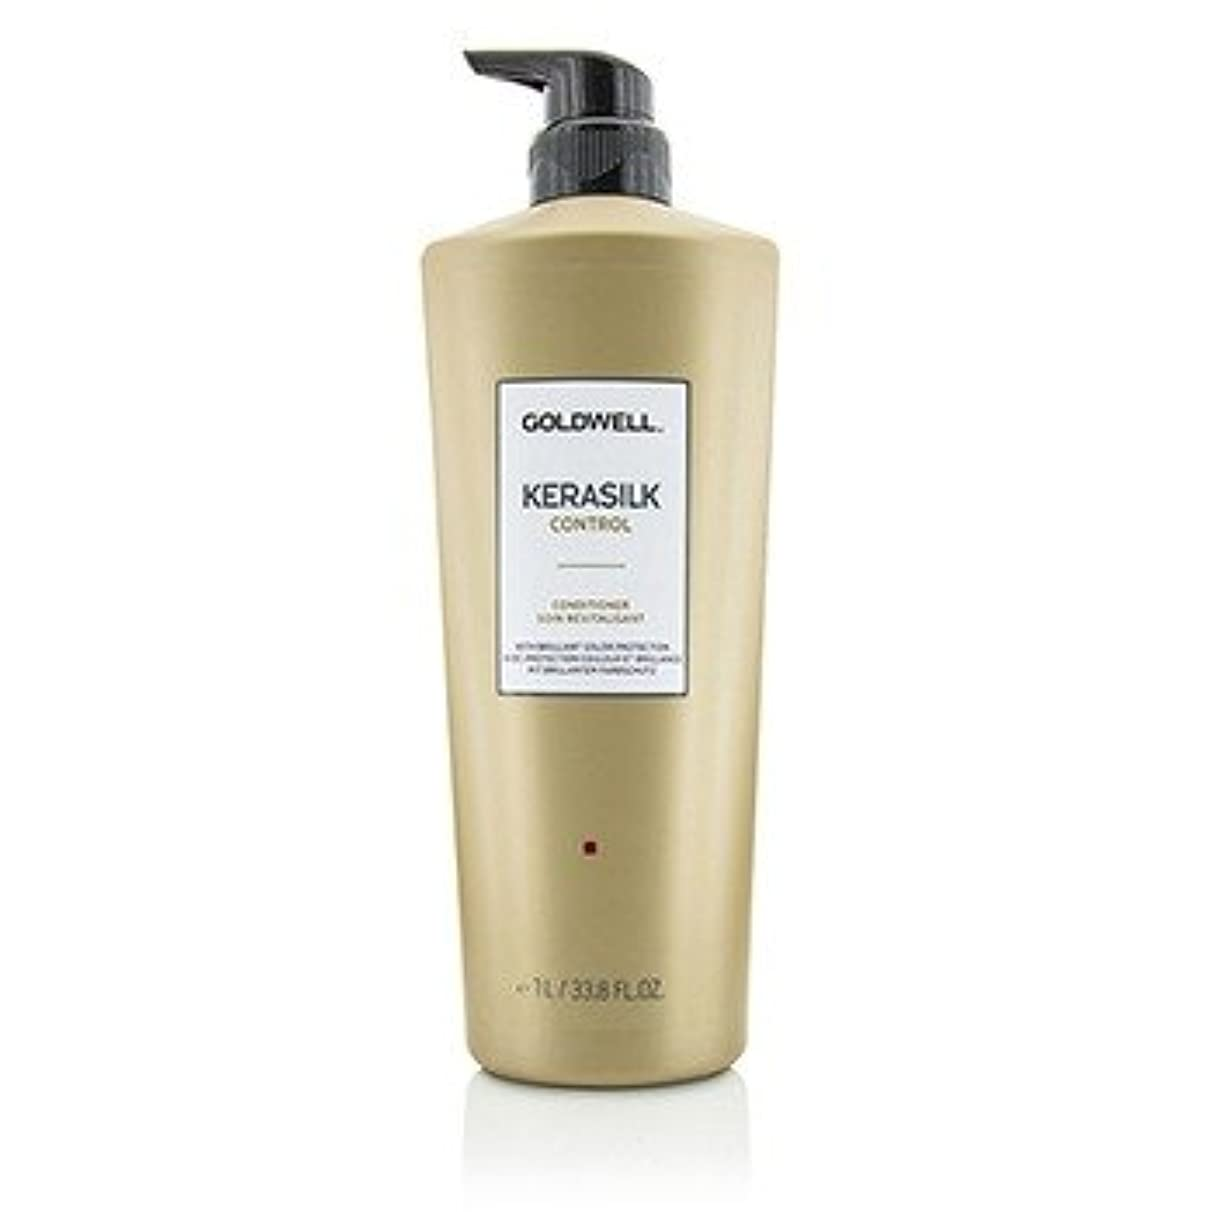 アテンダント行為受け継ぐ[Goldwell] Kerasilk Control Conditioner (For Unmanageable Unruly and Frizzy Hair) 200ml/6.7oz